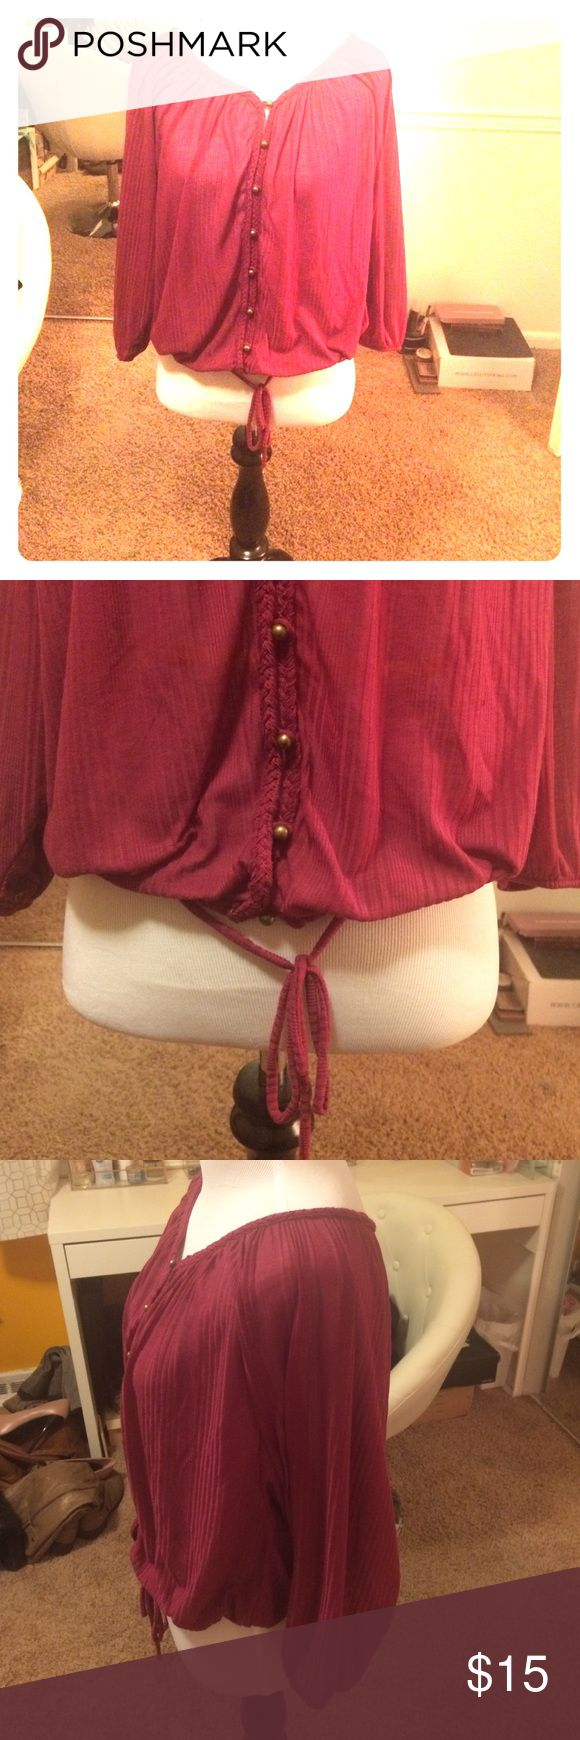 American Rag peasant blouse American Rag brand peasant blouse, size medium, sheer, maroon, button down front w/gold buttons, drawstring tie at waist American Rag Tops Blouses